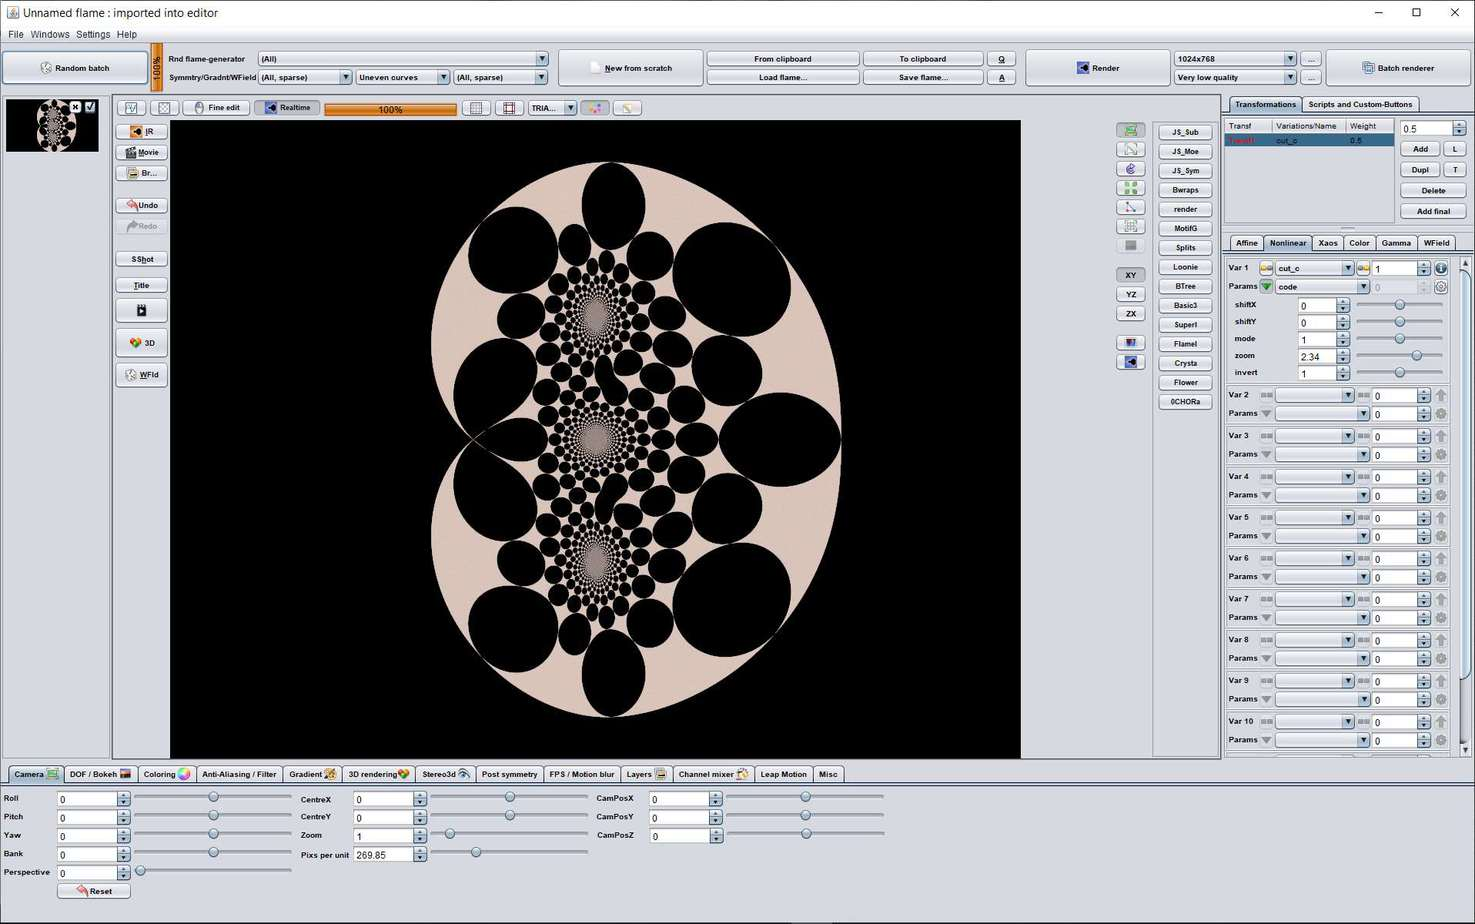 image 002 | Complex Numbers Operations for c_var & cut_c variations - Jesus Sosa